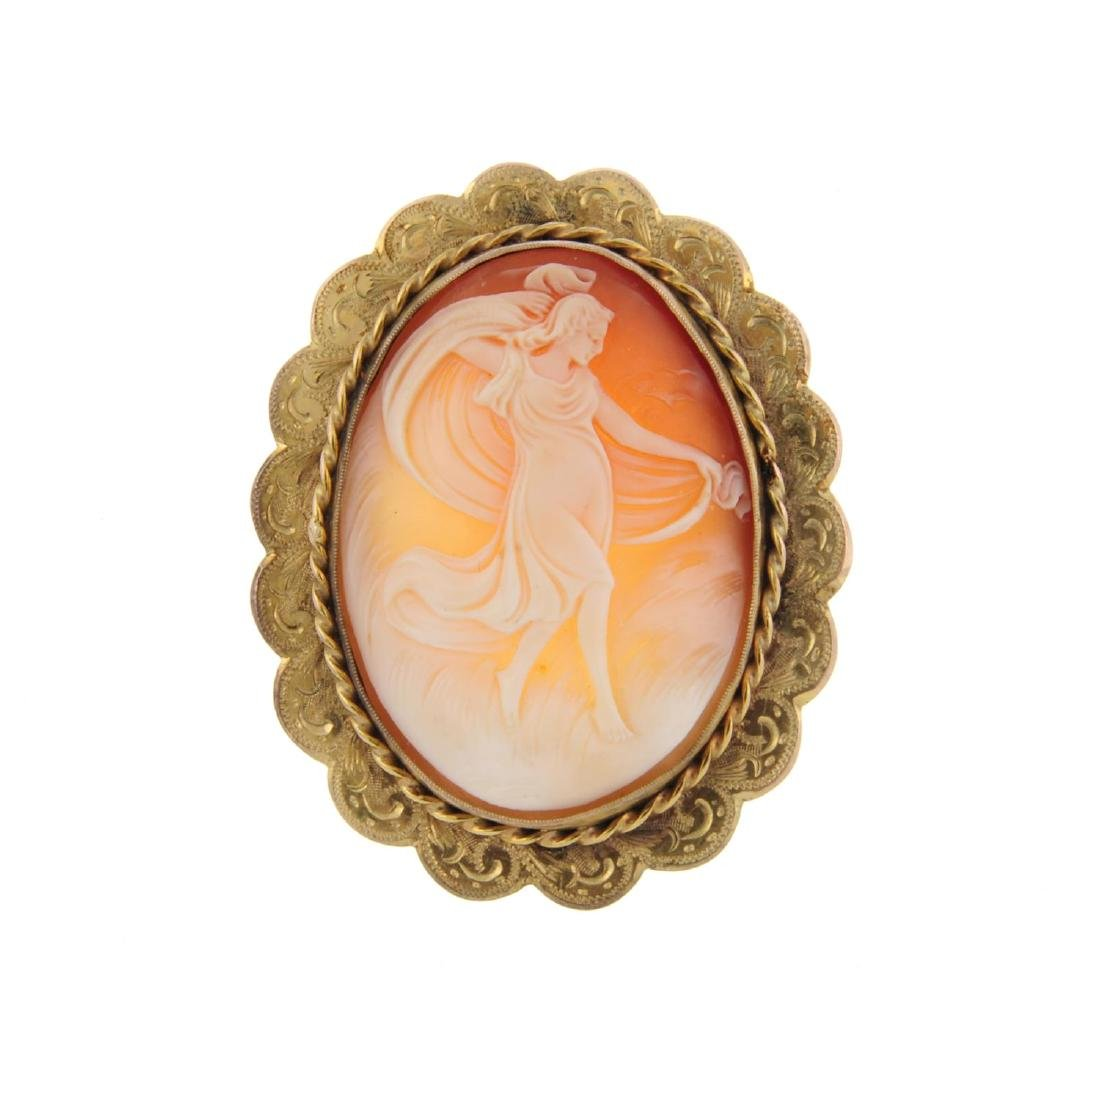 A cameo brooch. Of oval outline, the cameo panel